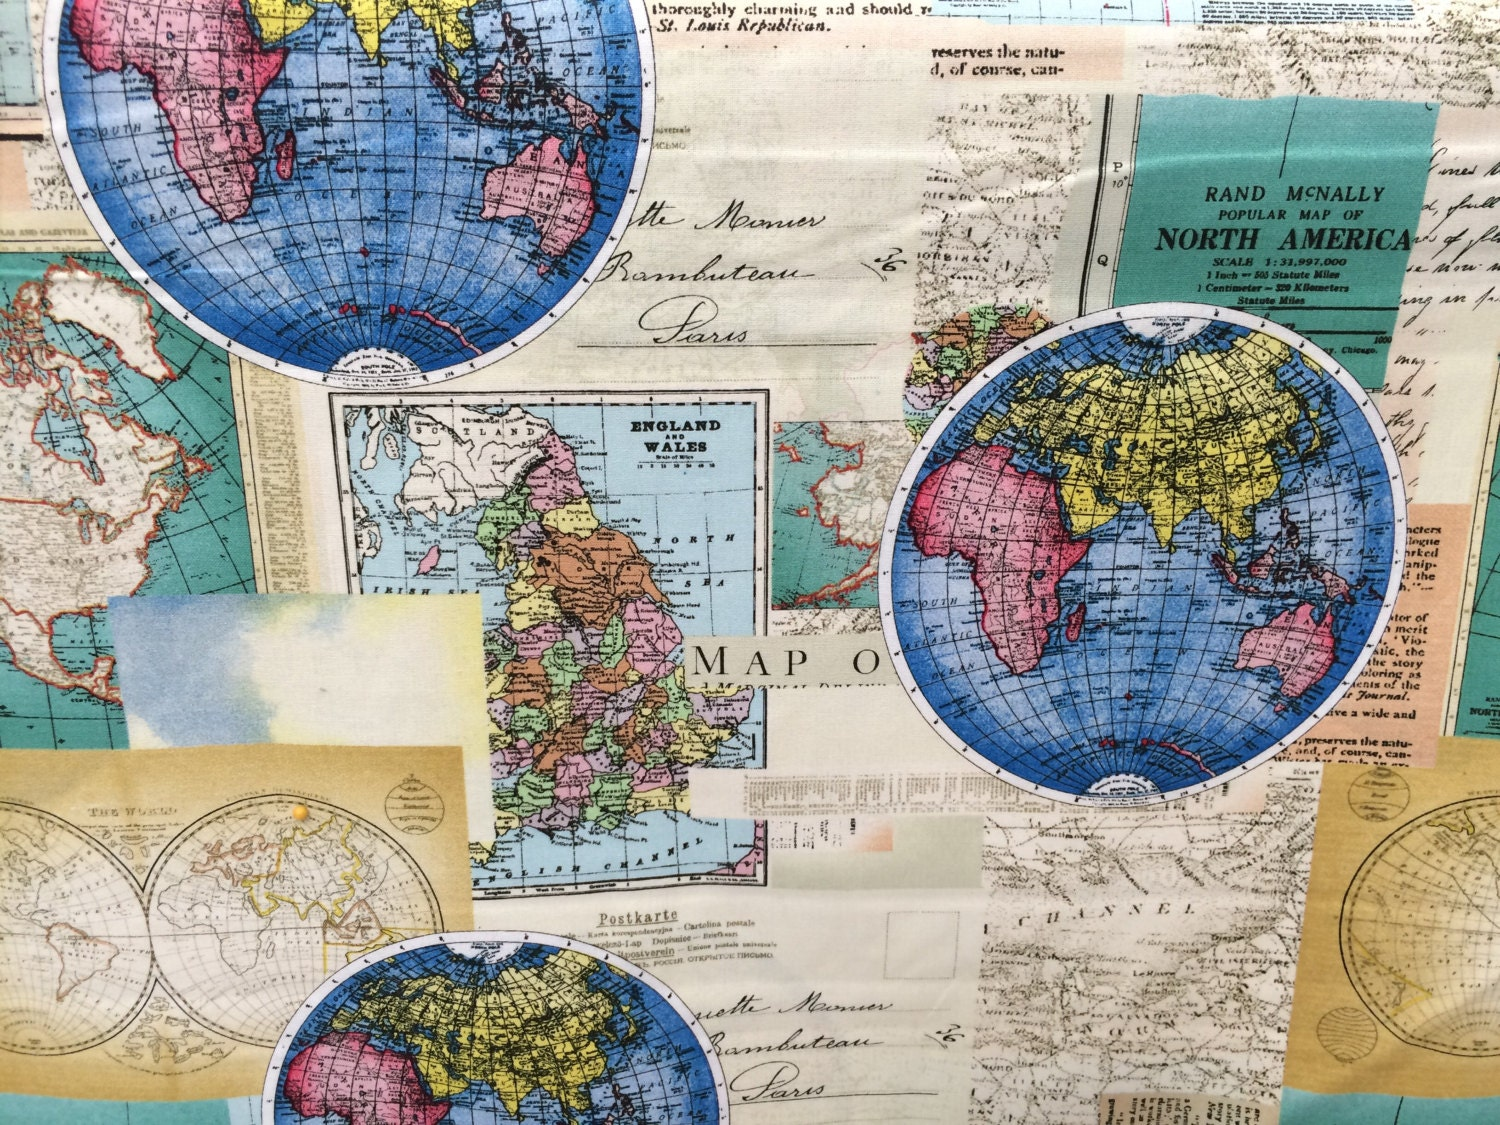 Globes world map fabric novelty fabric world map globe for Cloth world fabrics